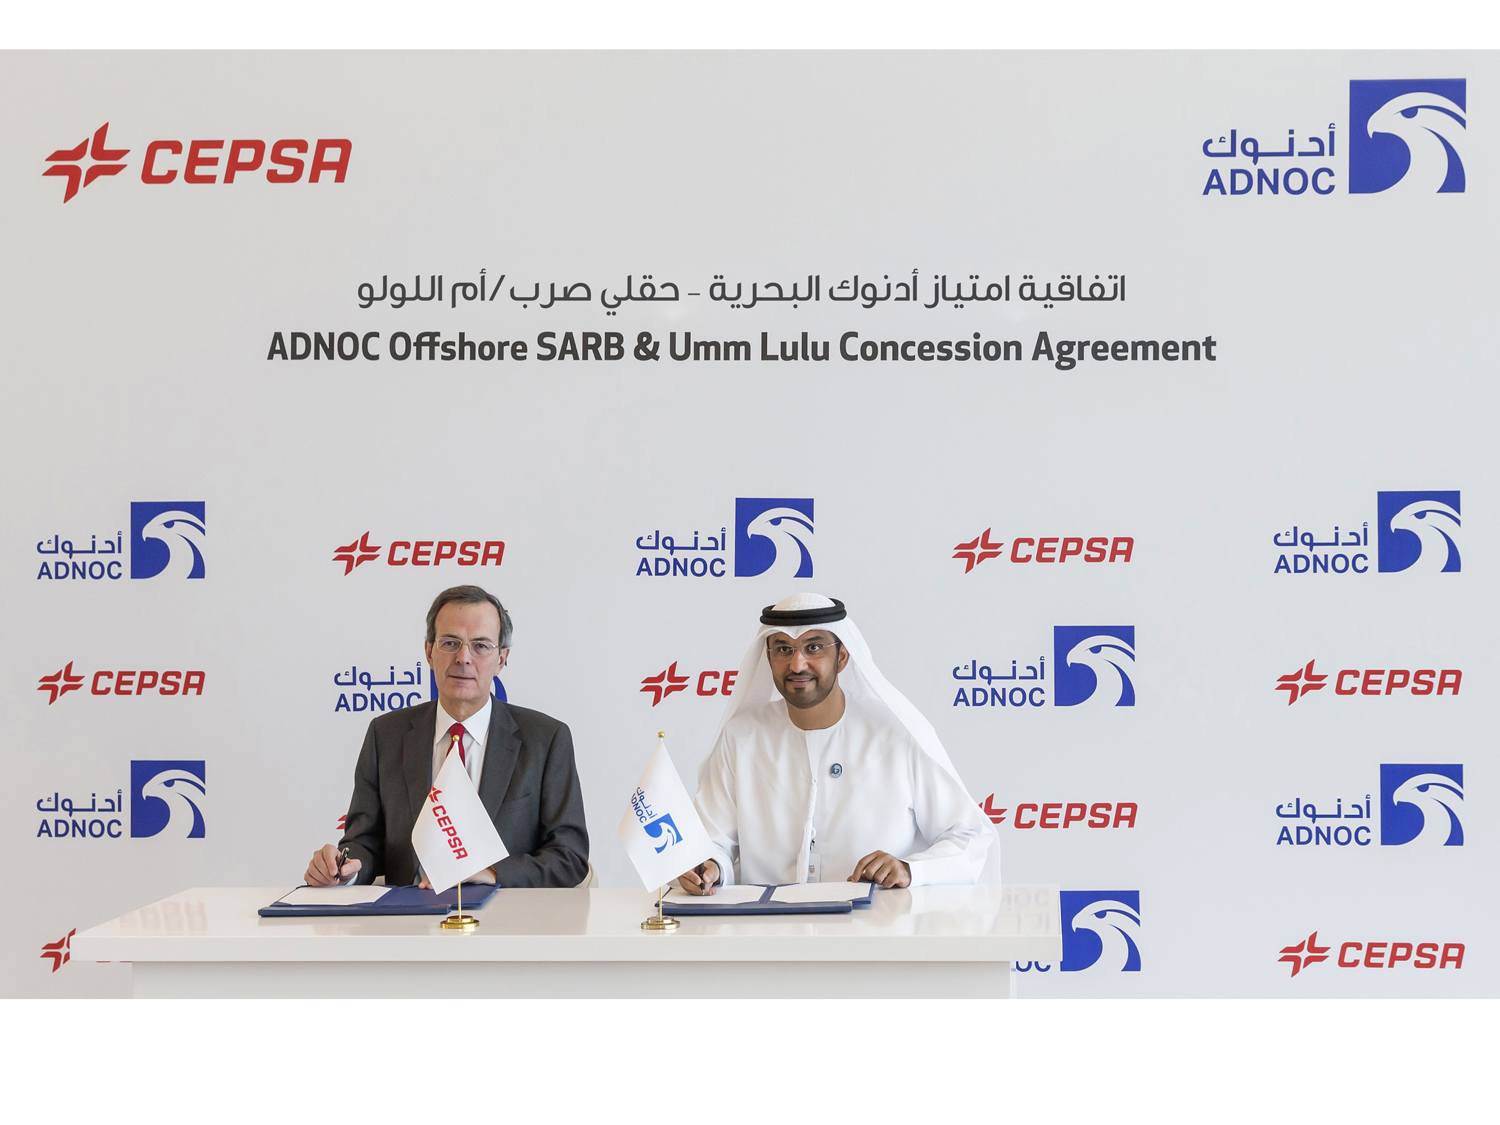 His Excellency Dr Sultan Ahmed Al Jaber, ADNOC Group Chief Executive Officer, and Pedro Miró, Vice Chairman and CEO of Cepsa